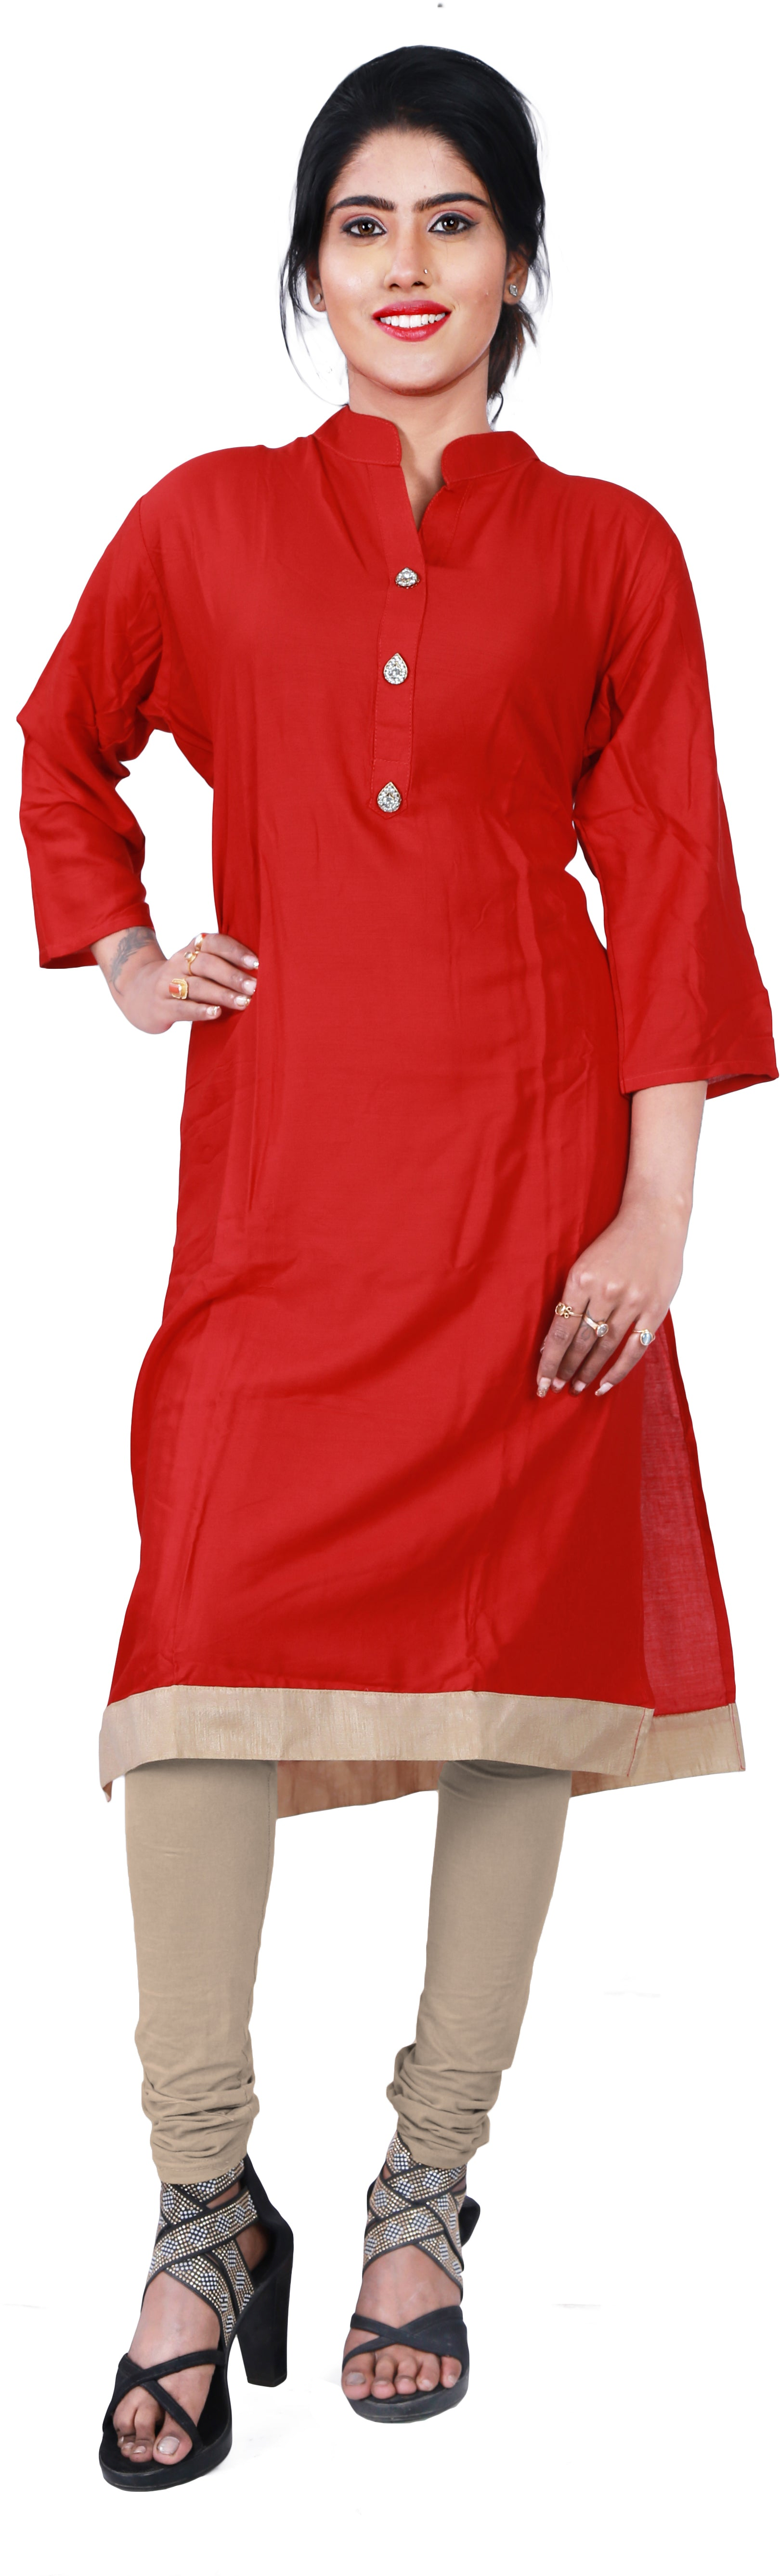 SMSAREE Red Designer Casual Partywear Pure Cotton Stone Hand Embroidery Work Stylish Women Kurti Kurta With Free Matching Leggings F182